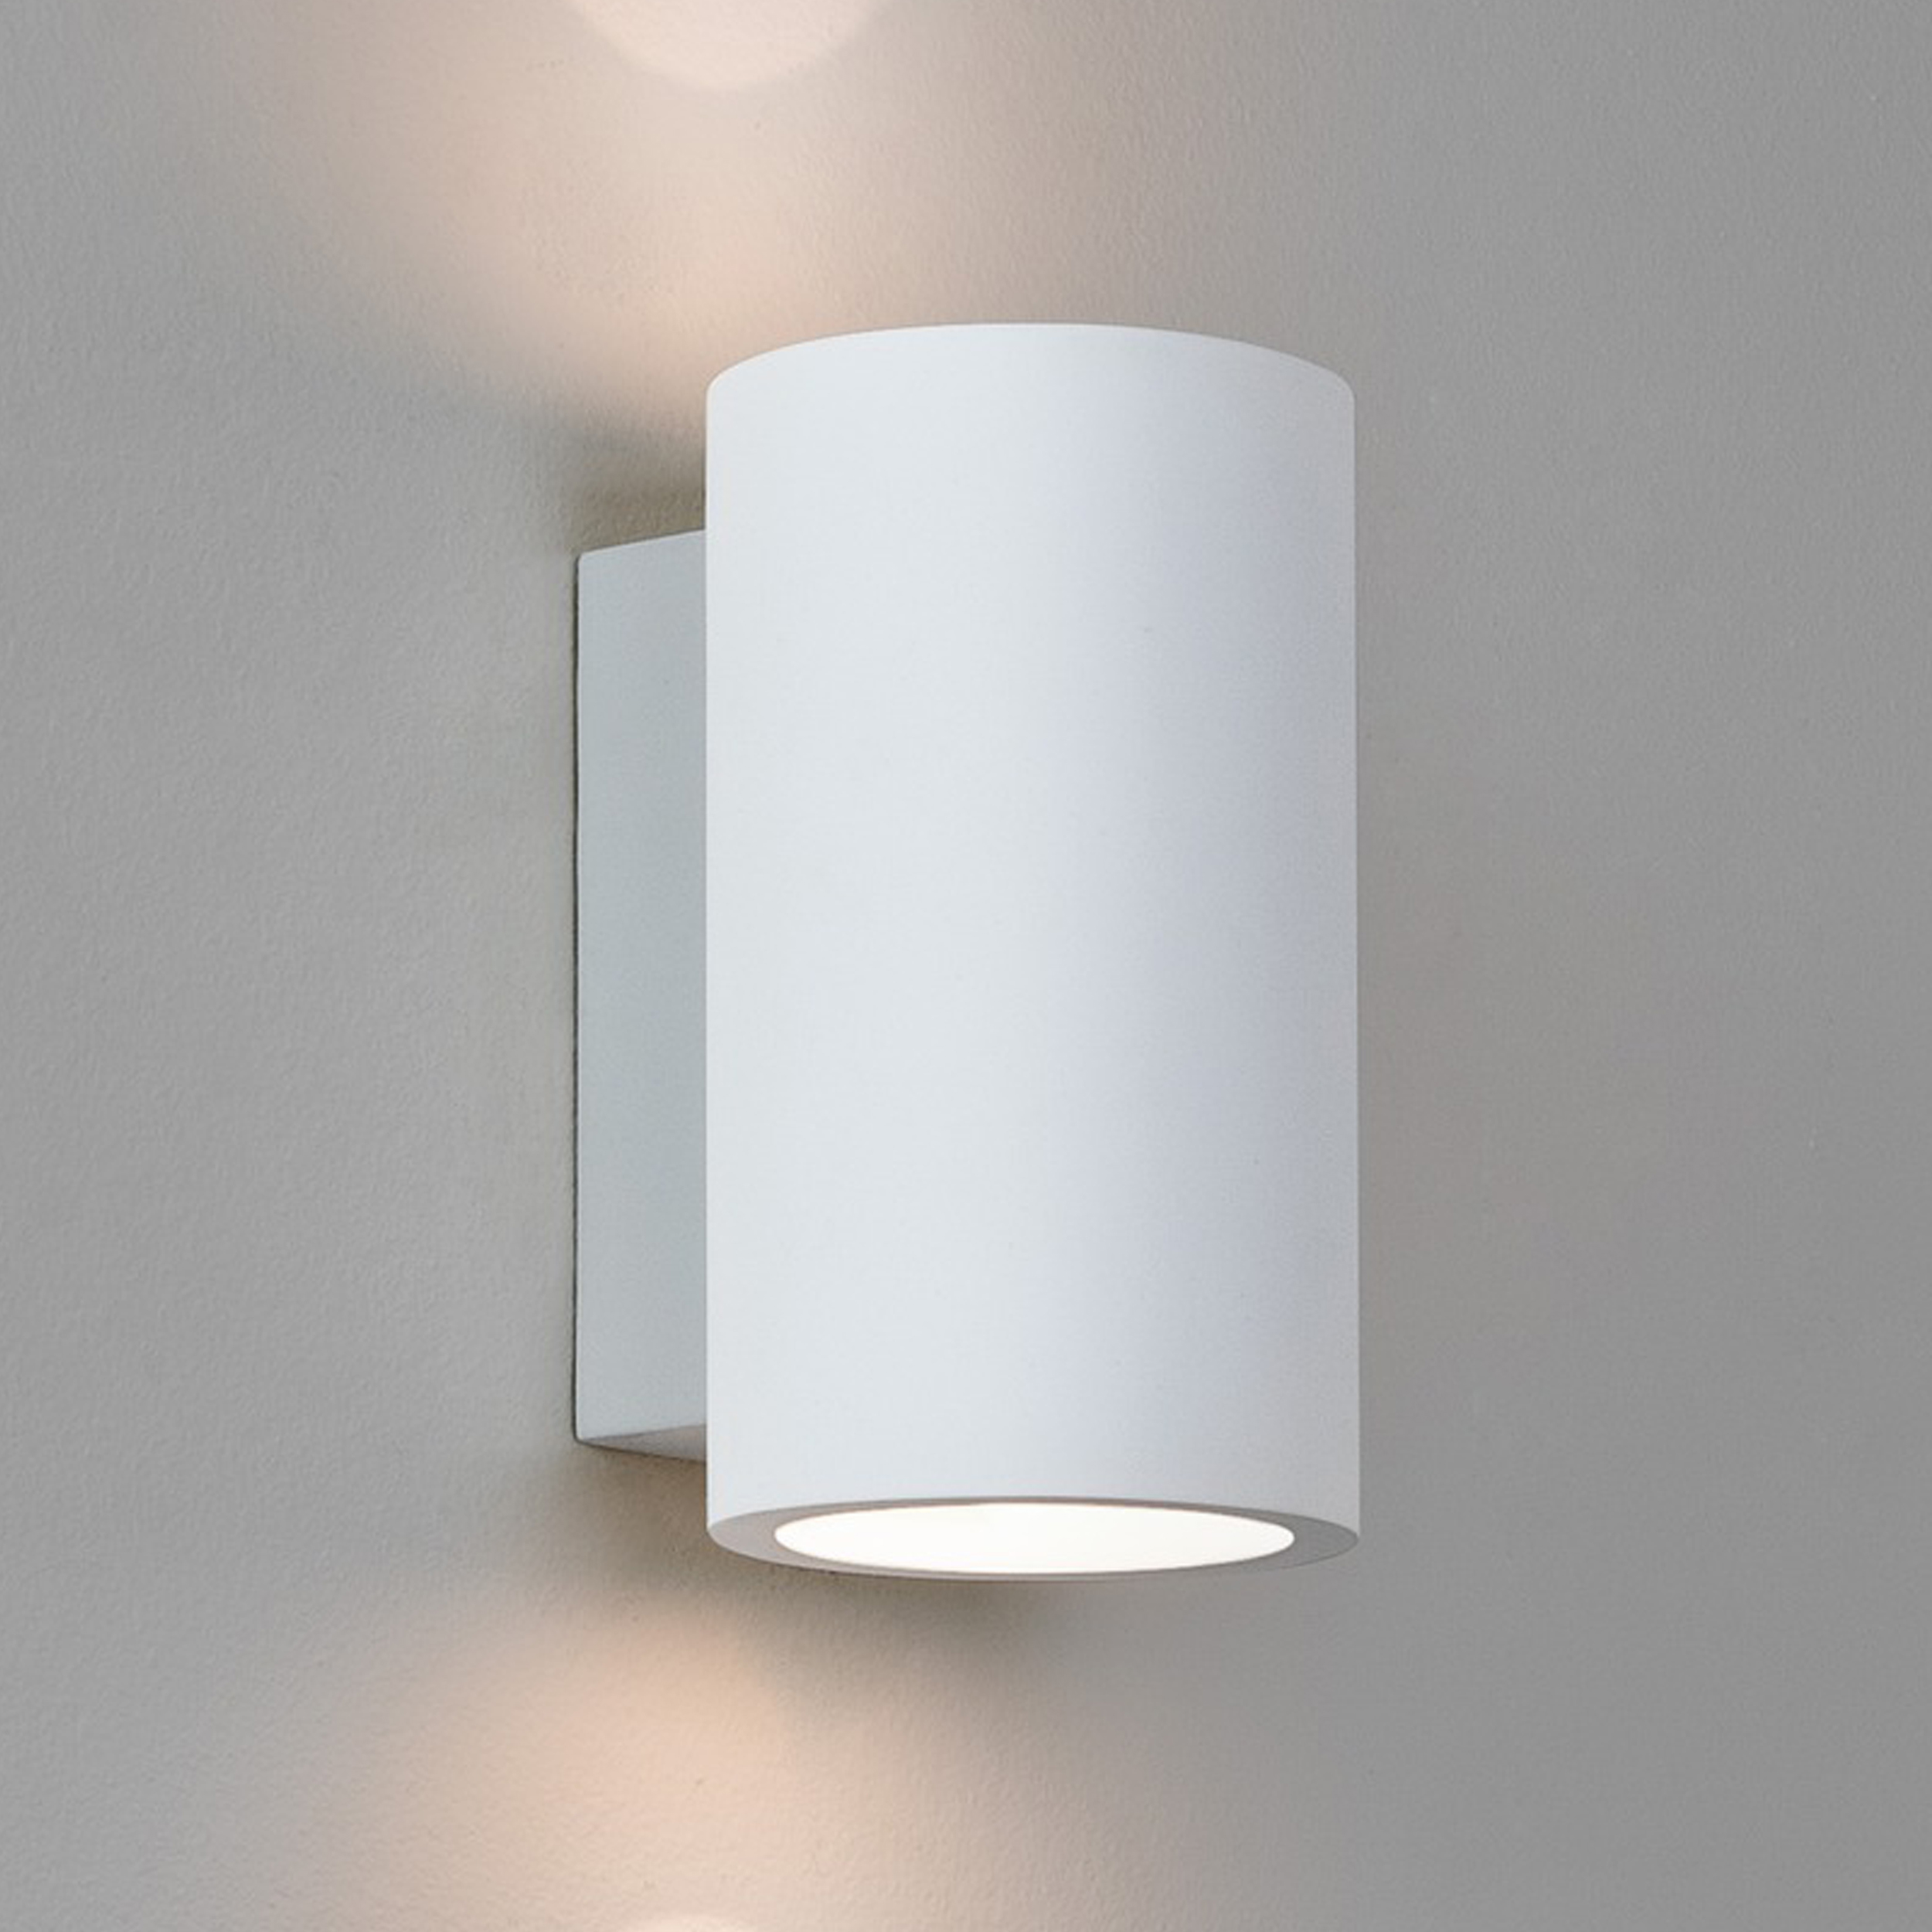 Astro Bologna 160 Led Wall Light White Plaster